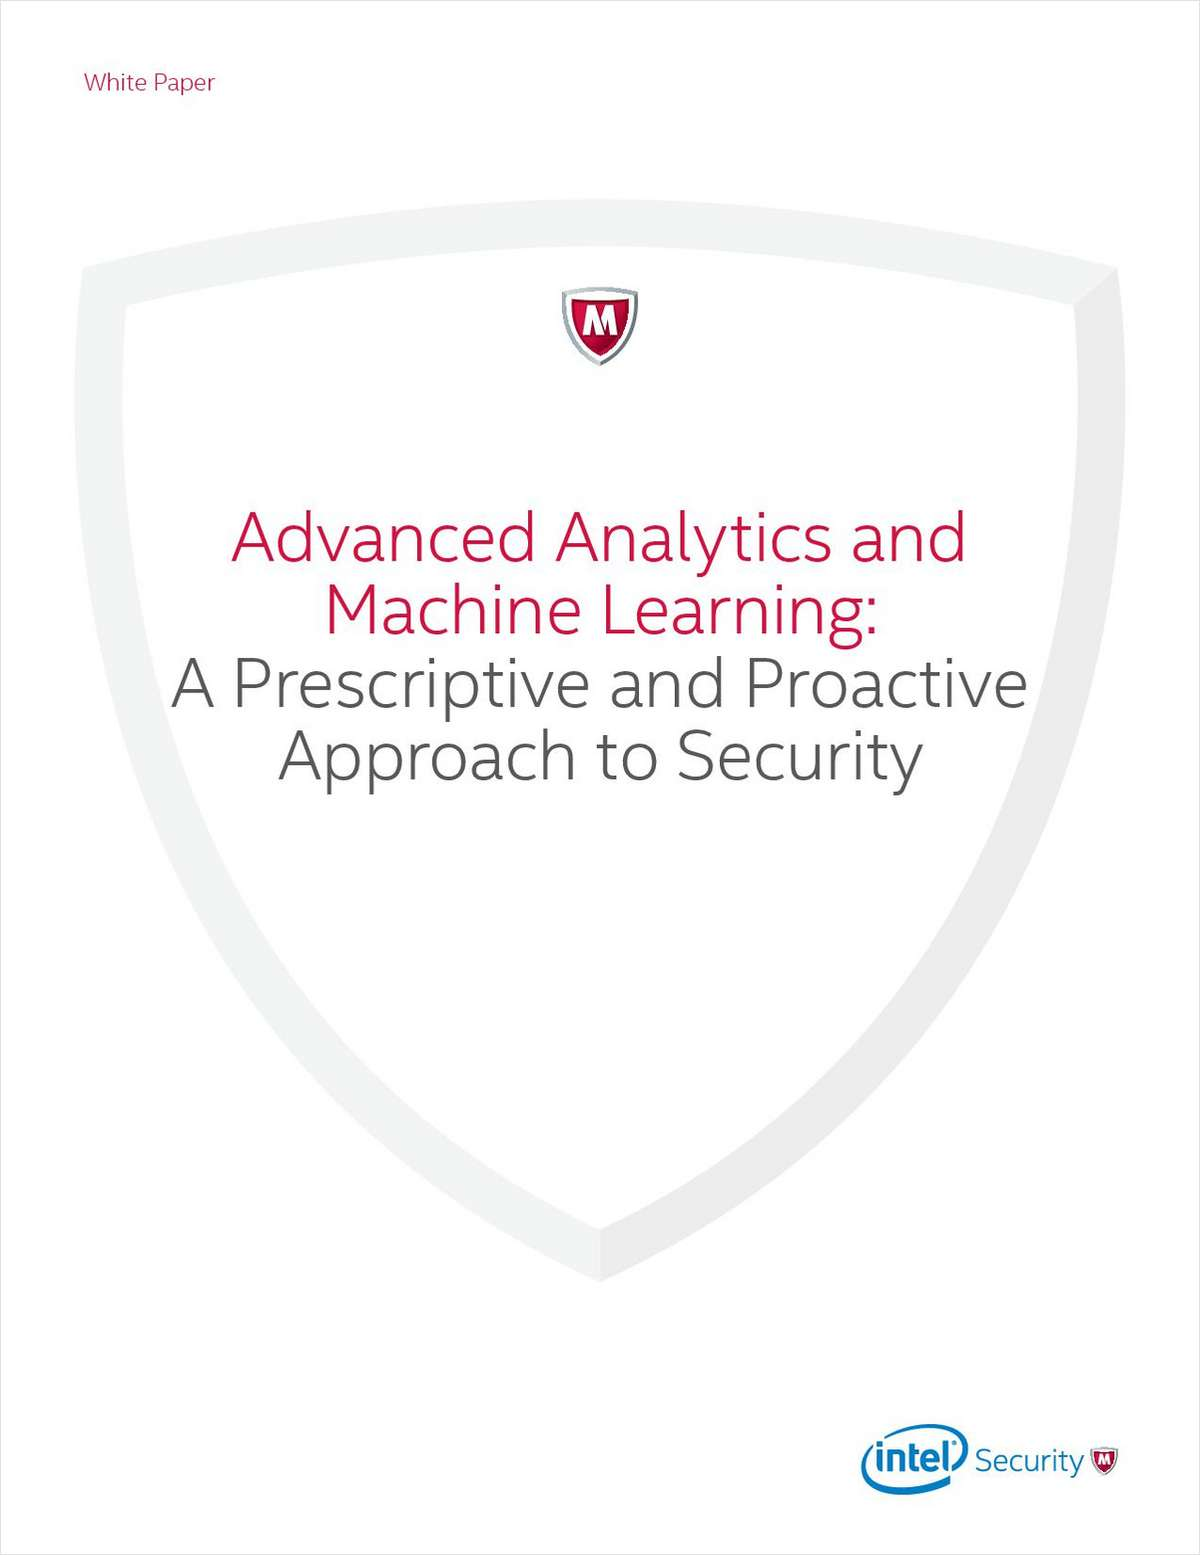 Advanced Analytics and Machine Learning: A Prescriptive and Proactive Approach to Security